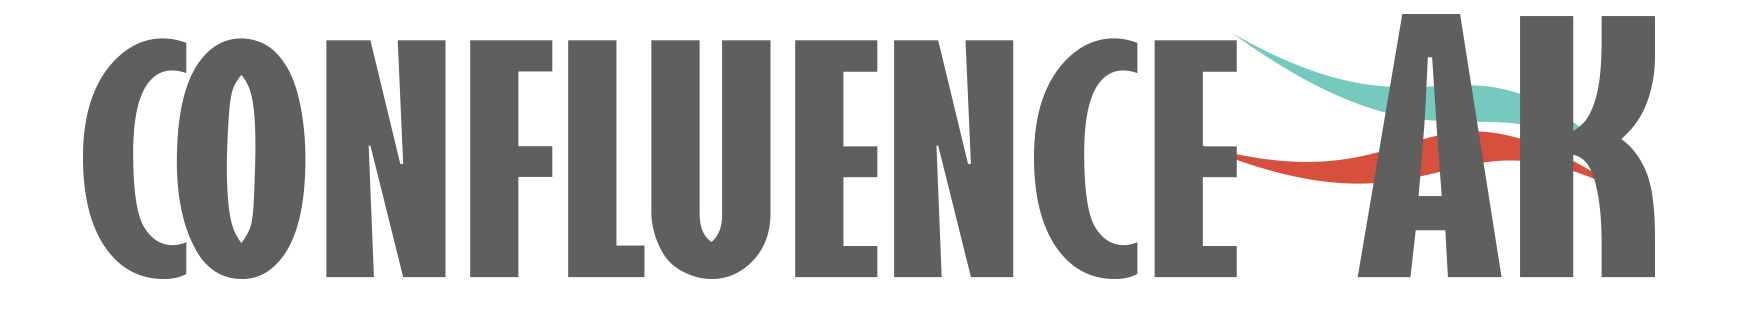 Confluence Logo Long.png